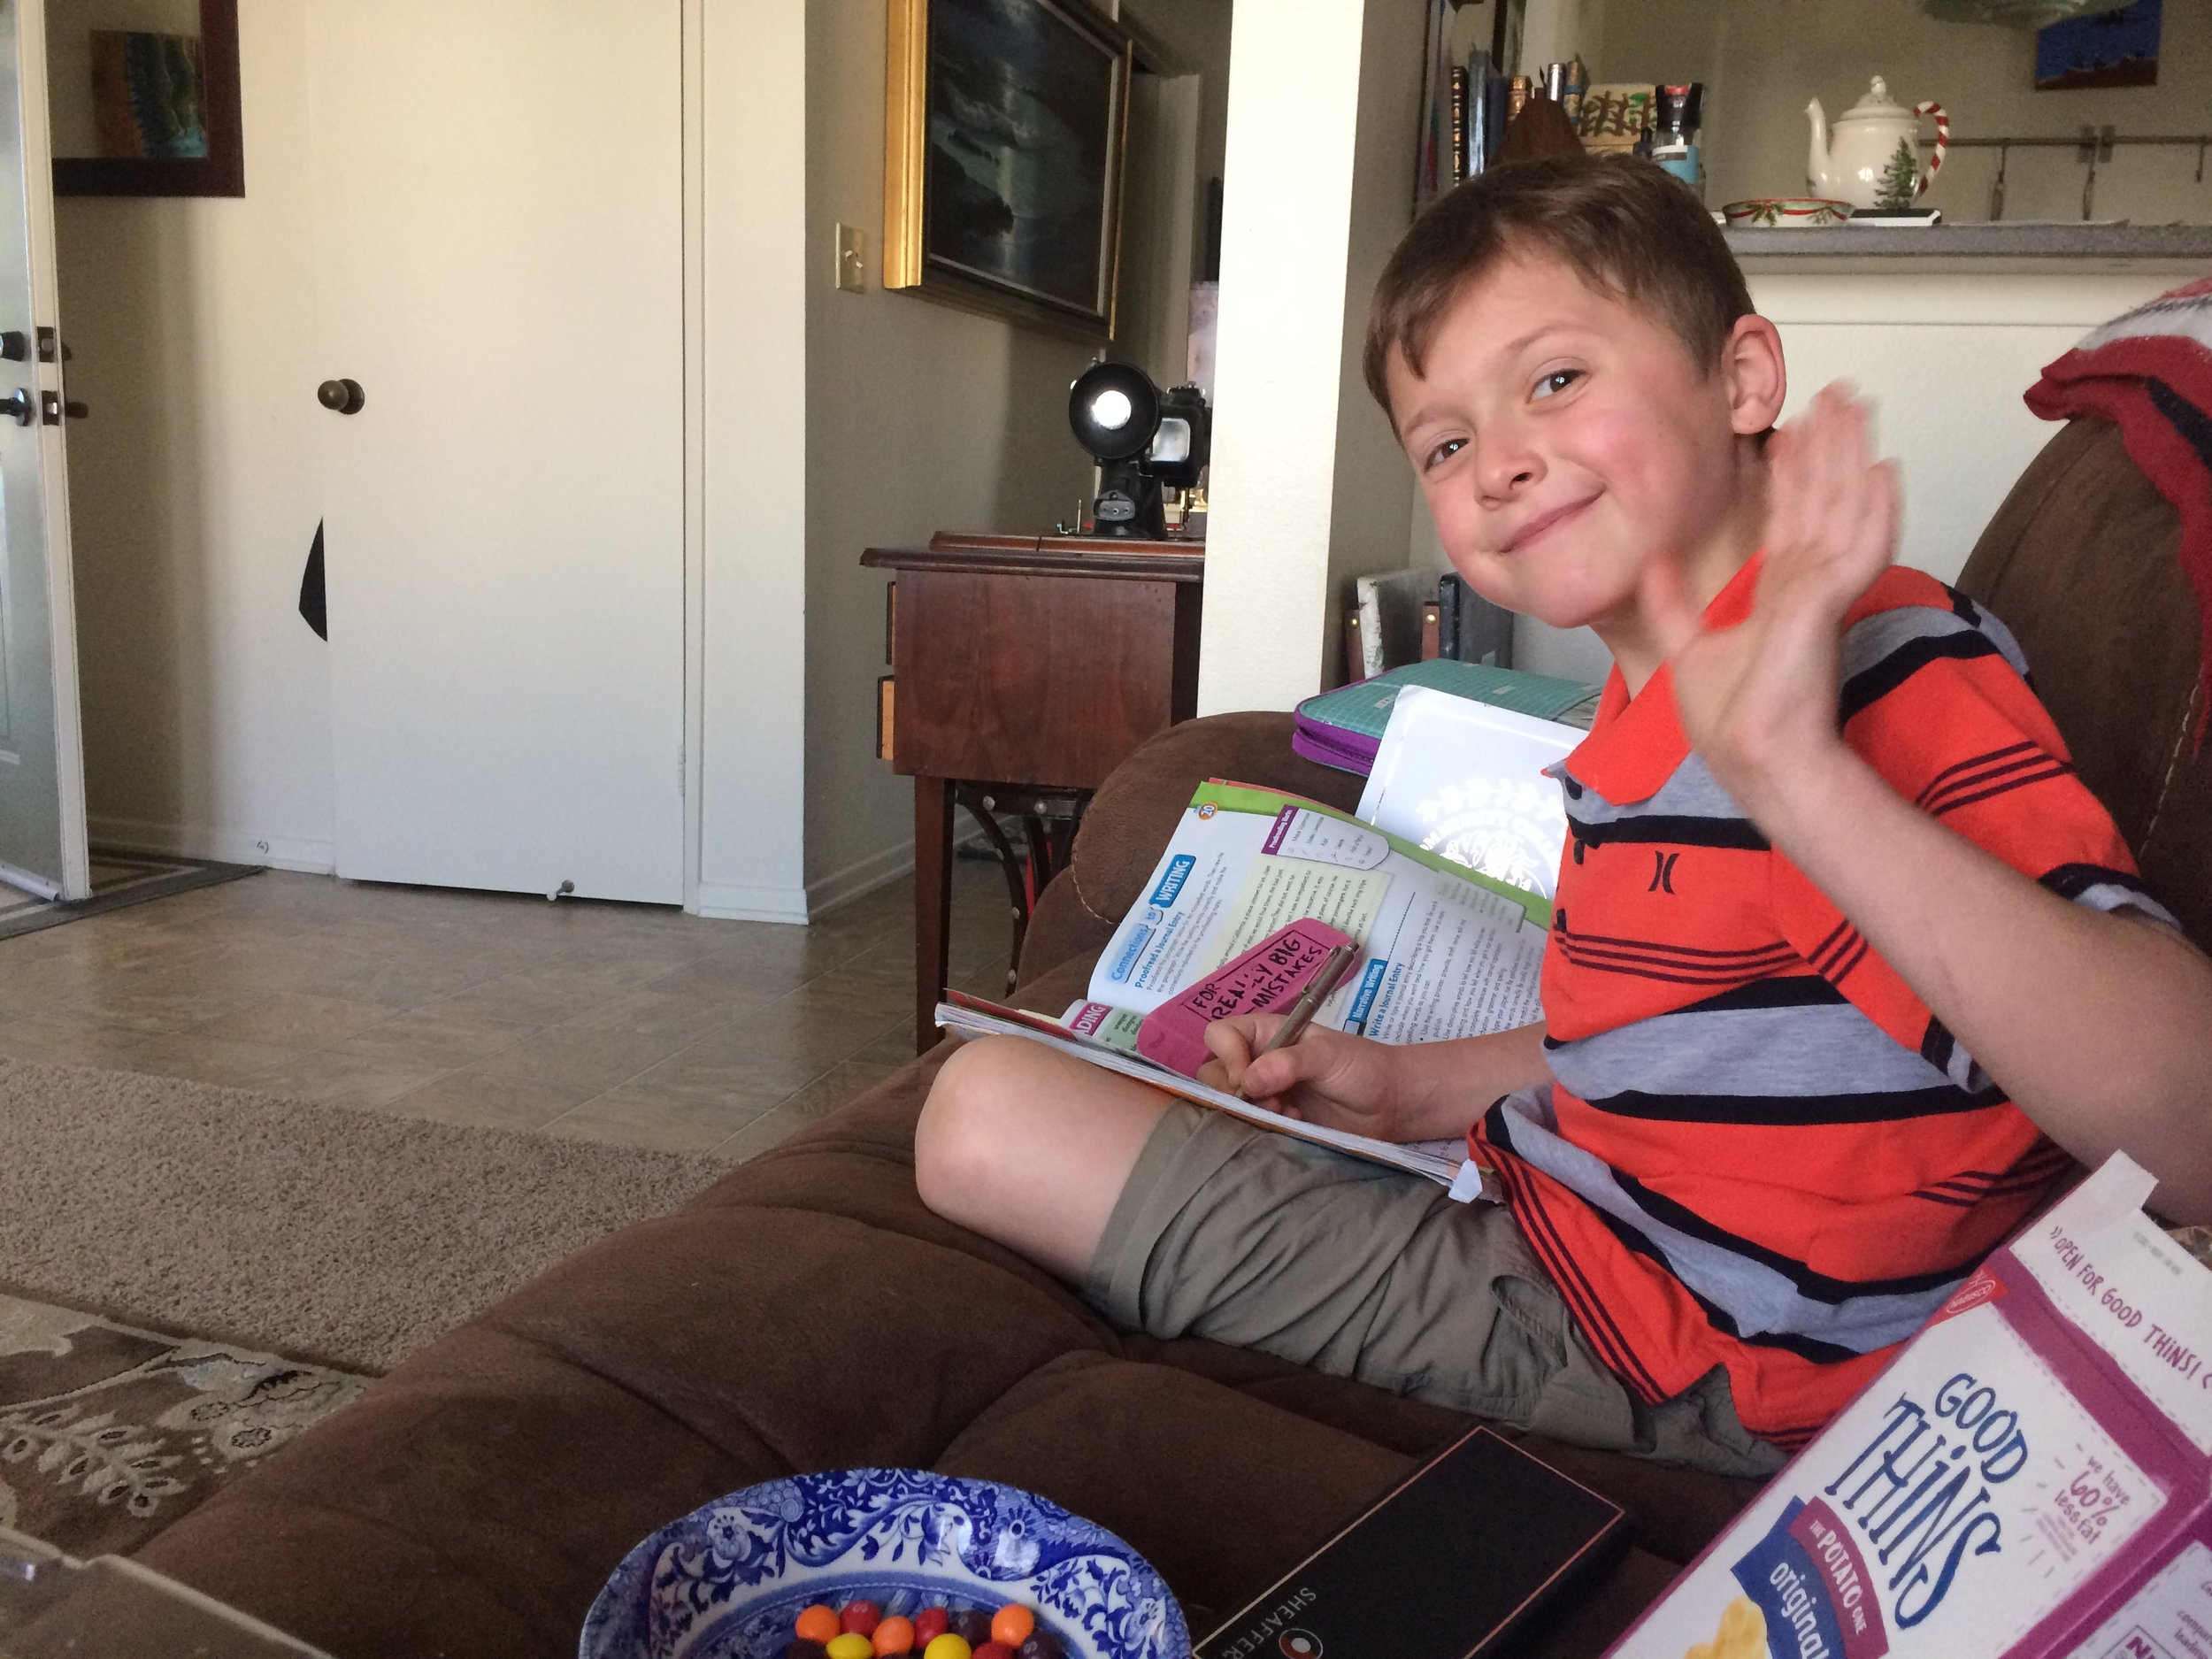 """My boy doing his homework today, while eating Skittles. He can't help eating junk food. His mother ate all the """"Good Thins,"""" leaving him with no choice but to eat the crap. Bad mommy."""